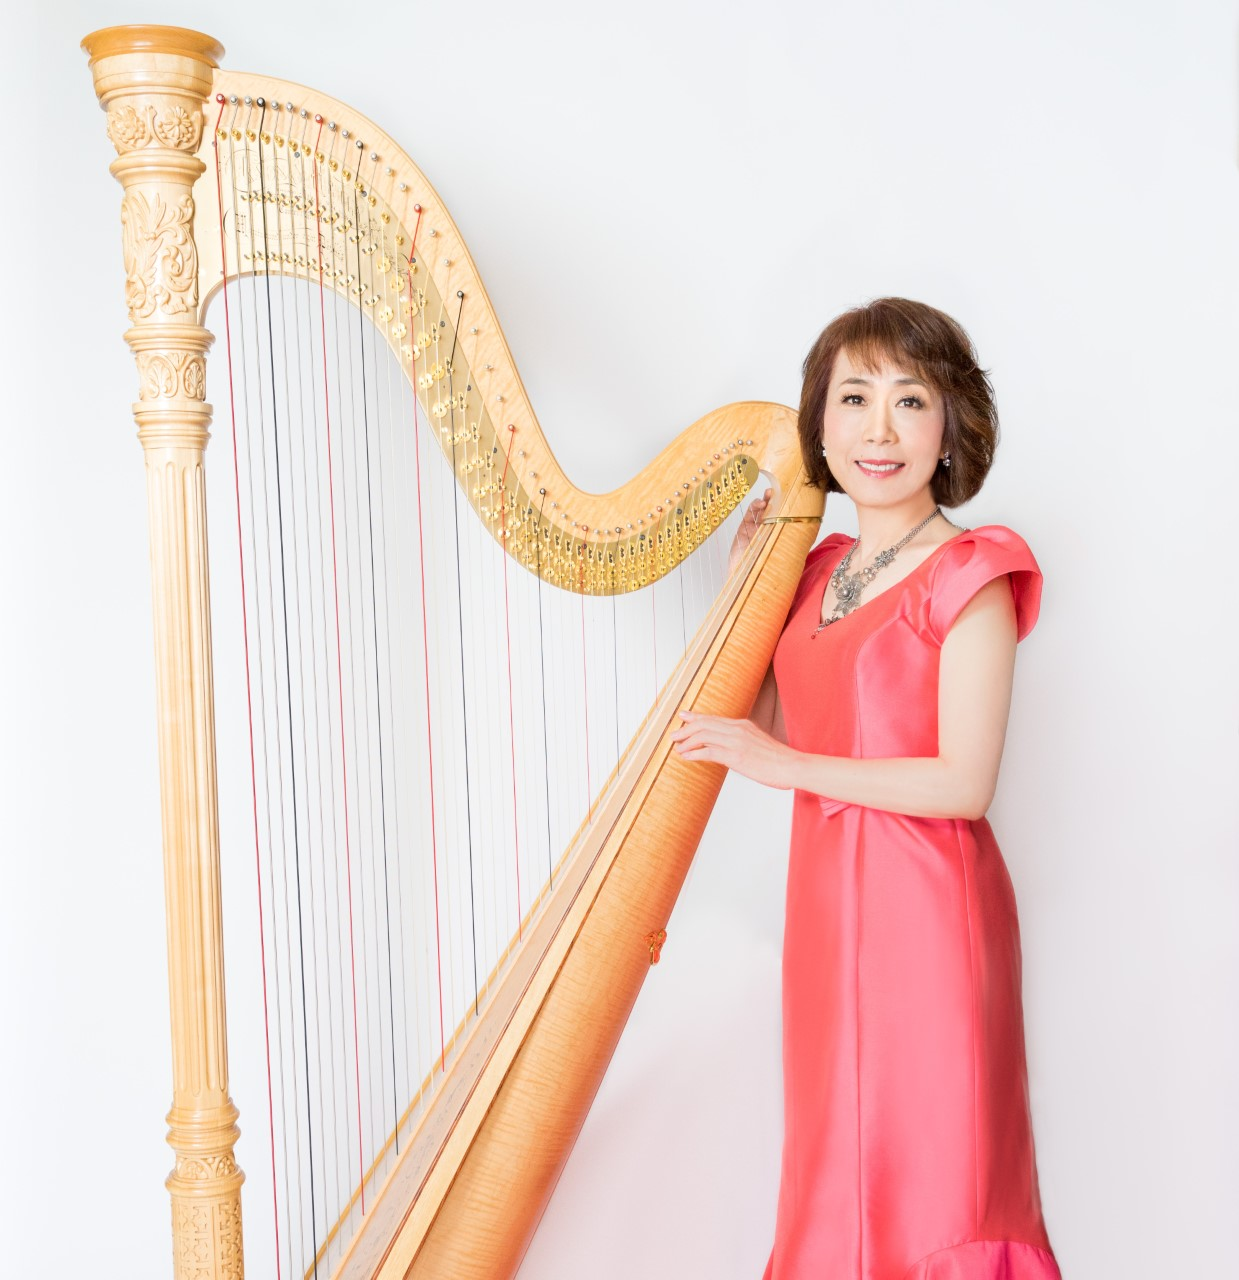 MIRIAM SUZUKI  Surrounded by a musical family, Miriam started her musical journey with a piano at the age of five. Two years later, she discovered what would be the passion of her life: the harp. However at the time of her family relocation from Kyoto, she could not continue the harp lessons. She continued playing the piano and went to study in Helsinki, Finland. In 1983, she moved to Southern California, where she explored the world of composition and decided to begin the harp again in order to develop her own distinctive sound. Her fusion of genres is clearly influenced by her cultural background and life experiences. Los Angeles has been a constant inspiration for her, adding a unique multicultural touch to her repertoire.  The blending of cultures, ideas, and media spurred her to try a mixture of her own, partnering with Saeko Kujiraoka, a Koto player, to form the Harp & Koto Duo. The traditional Japanese instrument adds a unique resonance when paired with the harp, creating a poetic tribute to the cultural diversity that makes her who she is today. Continuing on her musical journey, Miriam recently performed with Grammy award-winning Koto player, Yukiko Matsuyama, and together they charmed the audience.